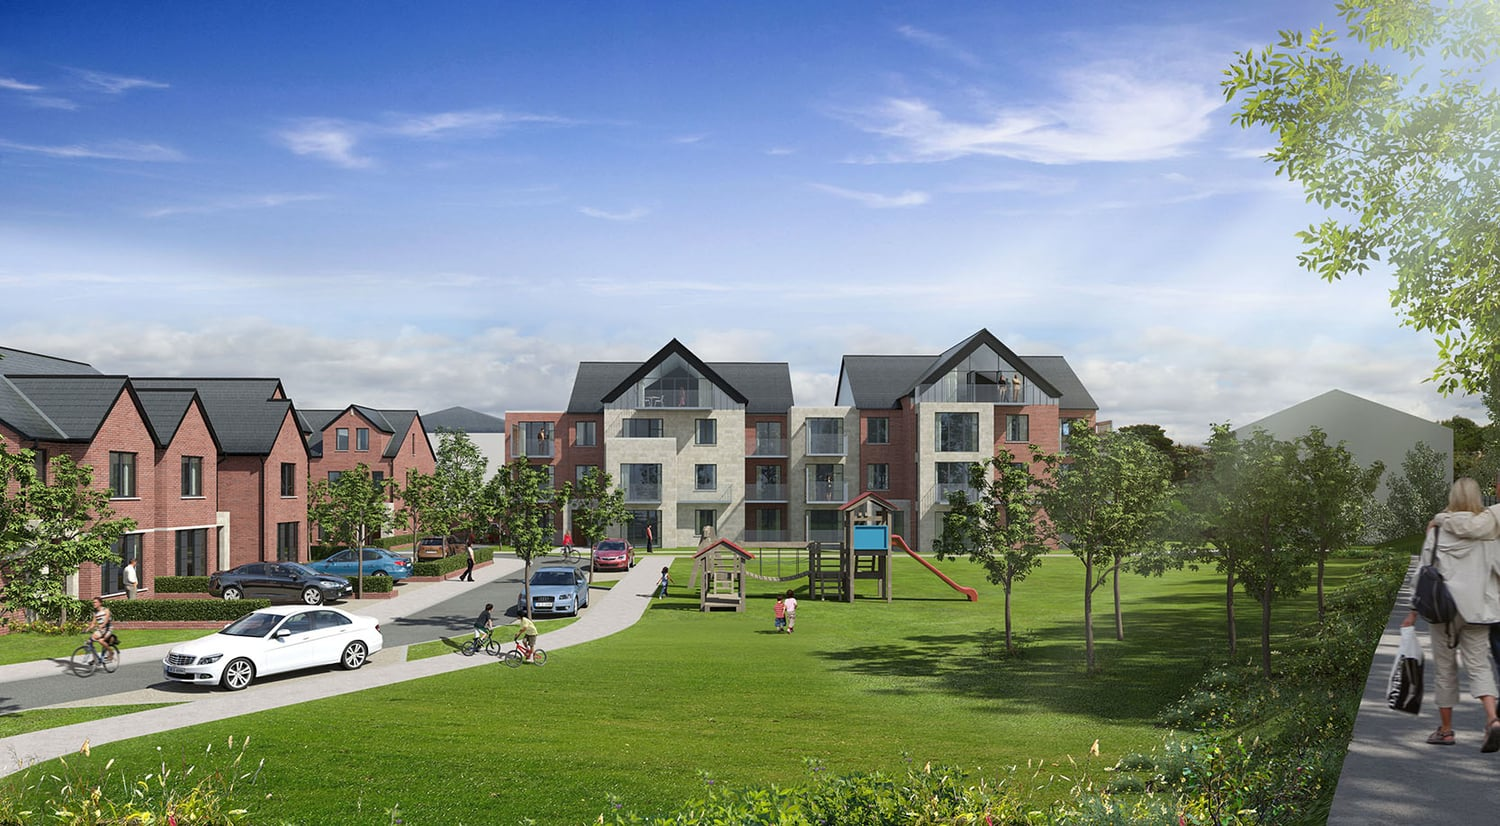 Kilcock   MDO recently submitted planning permission for 64 new residential units, including 48 Dwellings houses and a 3- 4 storey apartment building.The site is a derelict factory site, which forms a key site in Kilcock town centre.